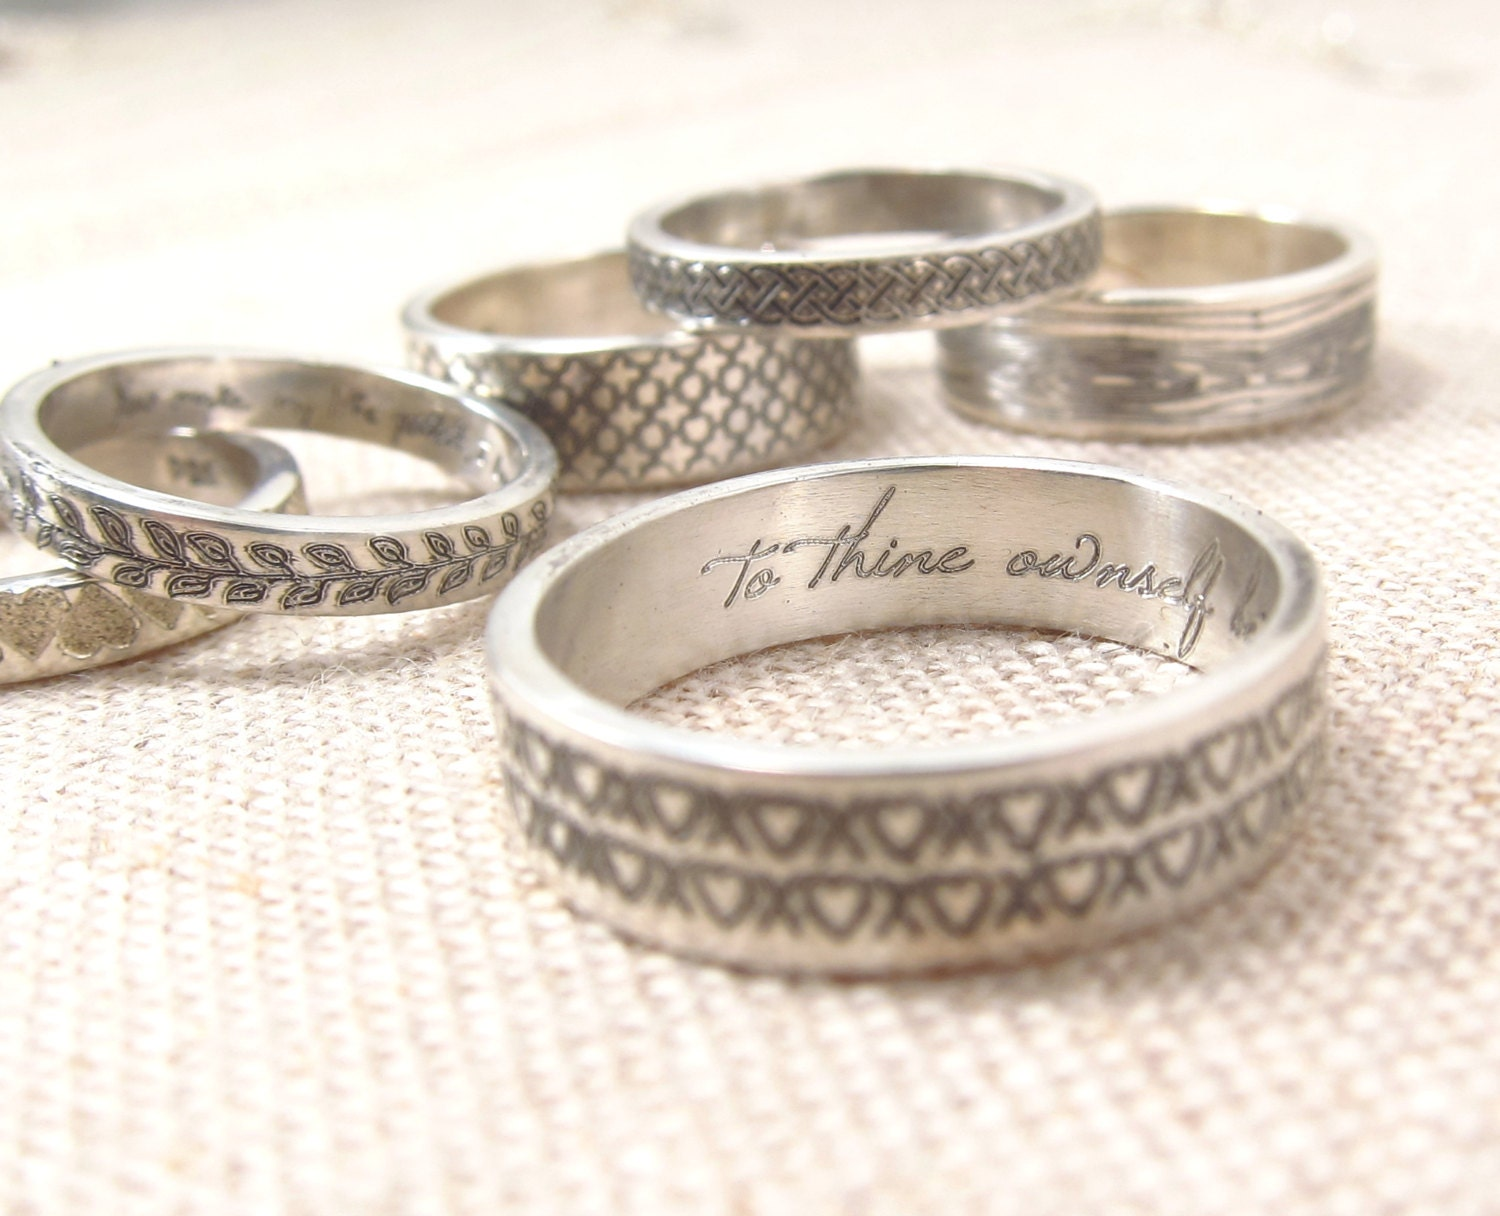 jewelry personalized ring custom name jewelry patterned. Black Bedroom Furniture Sets. Home Design Ideas